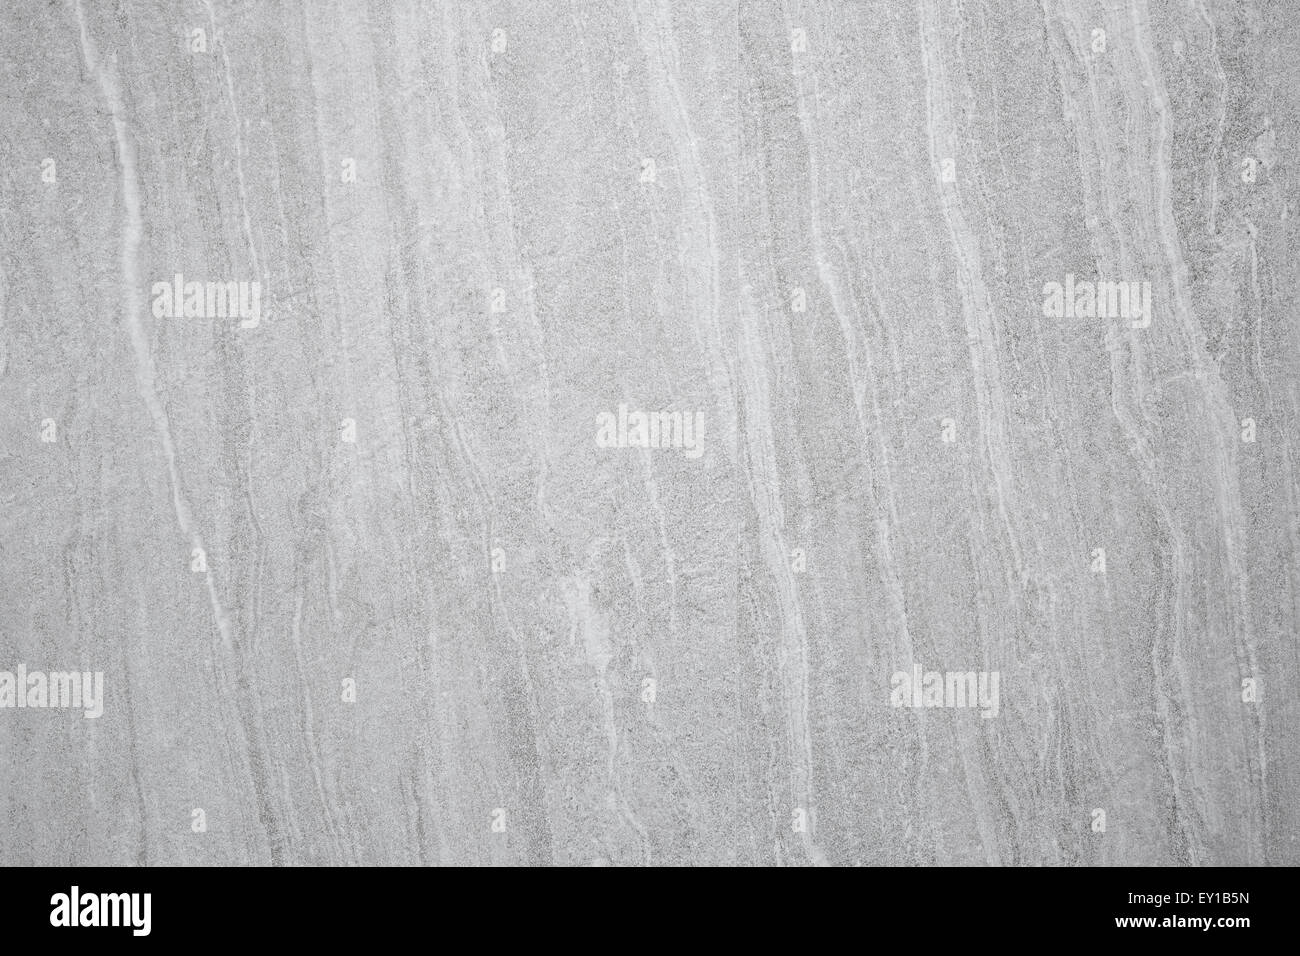 Gray concrete smooth stone wall texture background stock for Smooth concrete texture